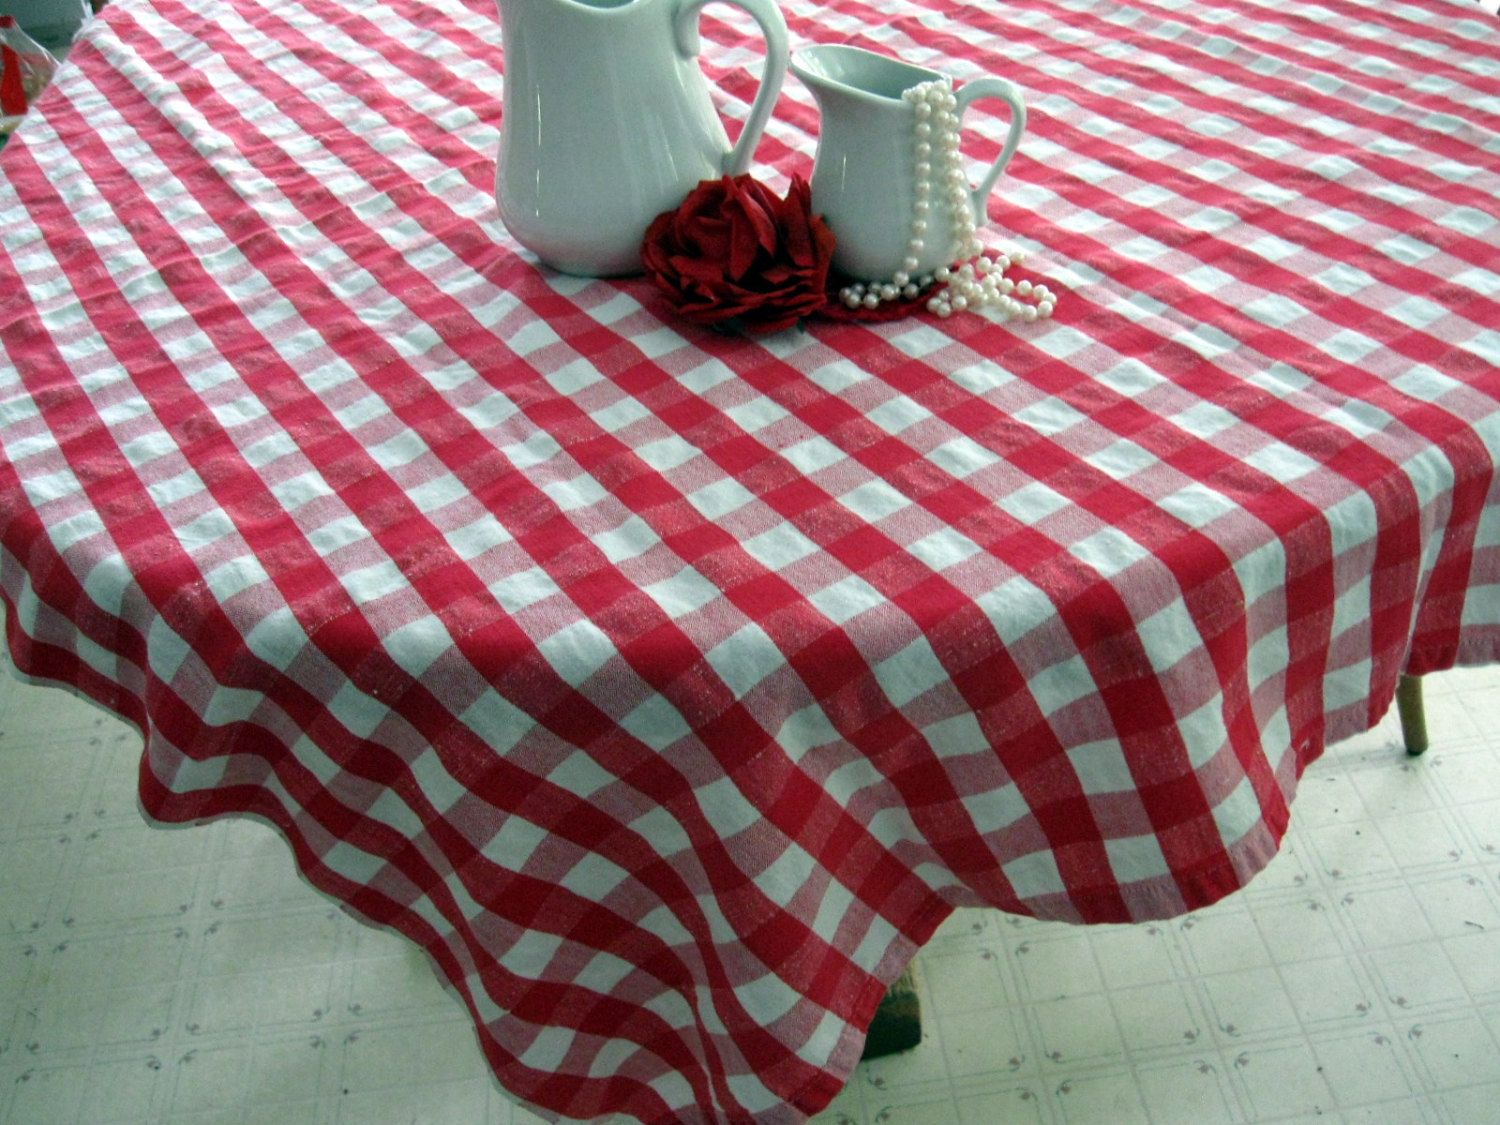 Tablecloth Checkered Tablecloth Red and White Plaid